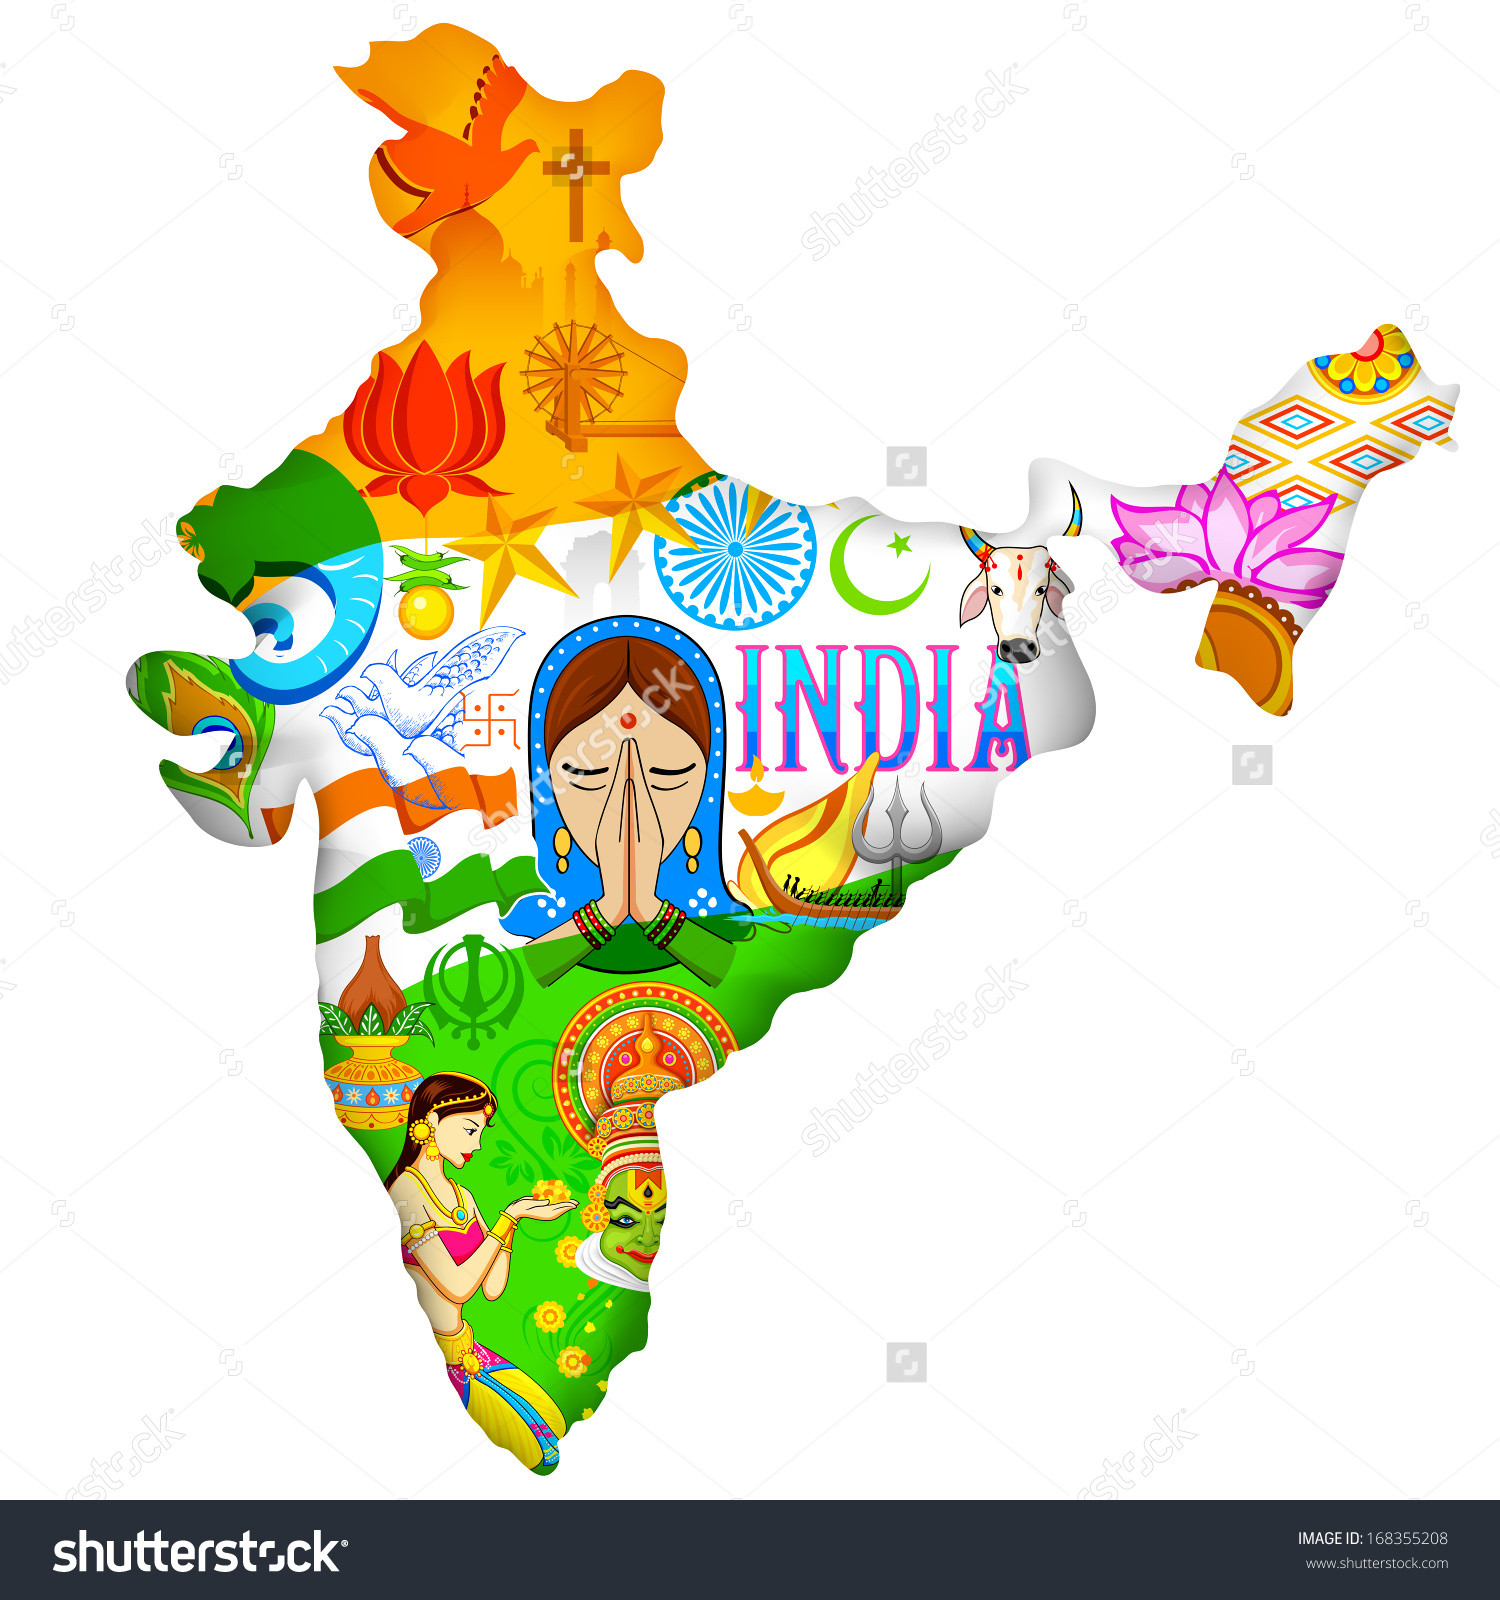 india diversity Workforce diversity in india and the us by dr karine schomer, cmct president and india practice leader the world's two largest democracies, india and the united states, are also the world's most diverse societies.